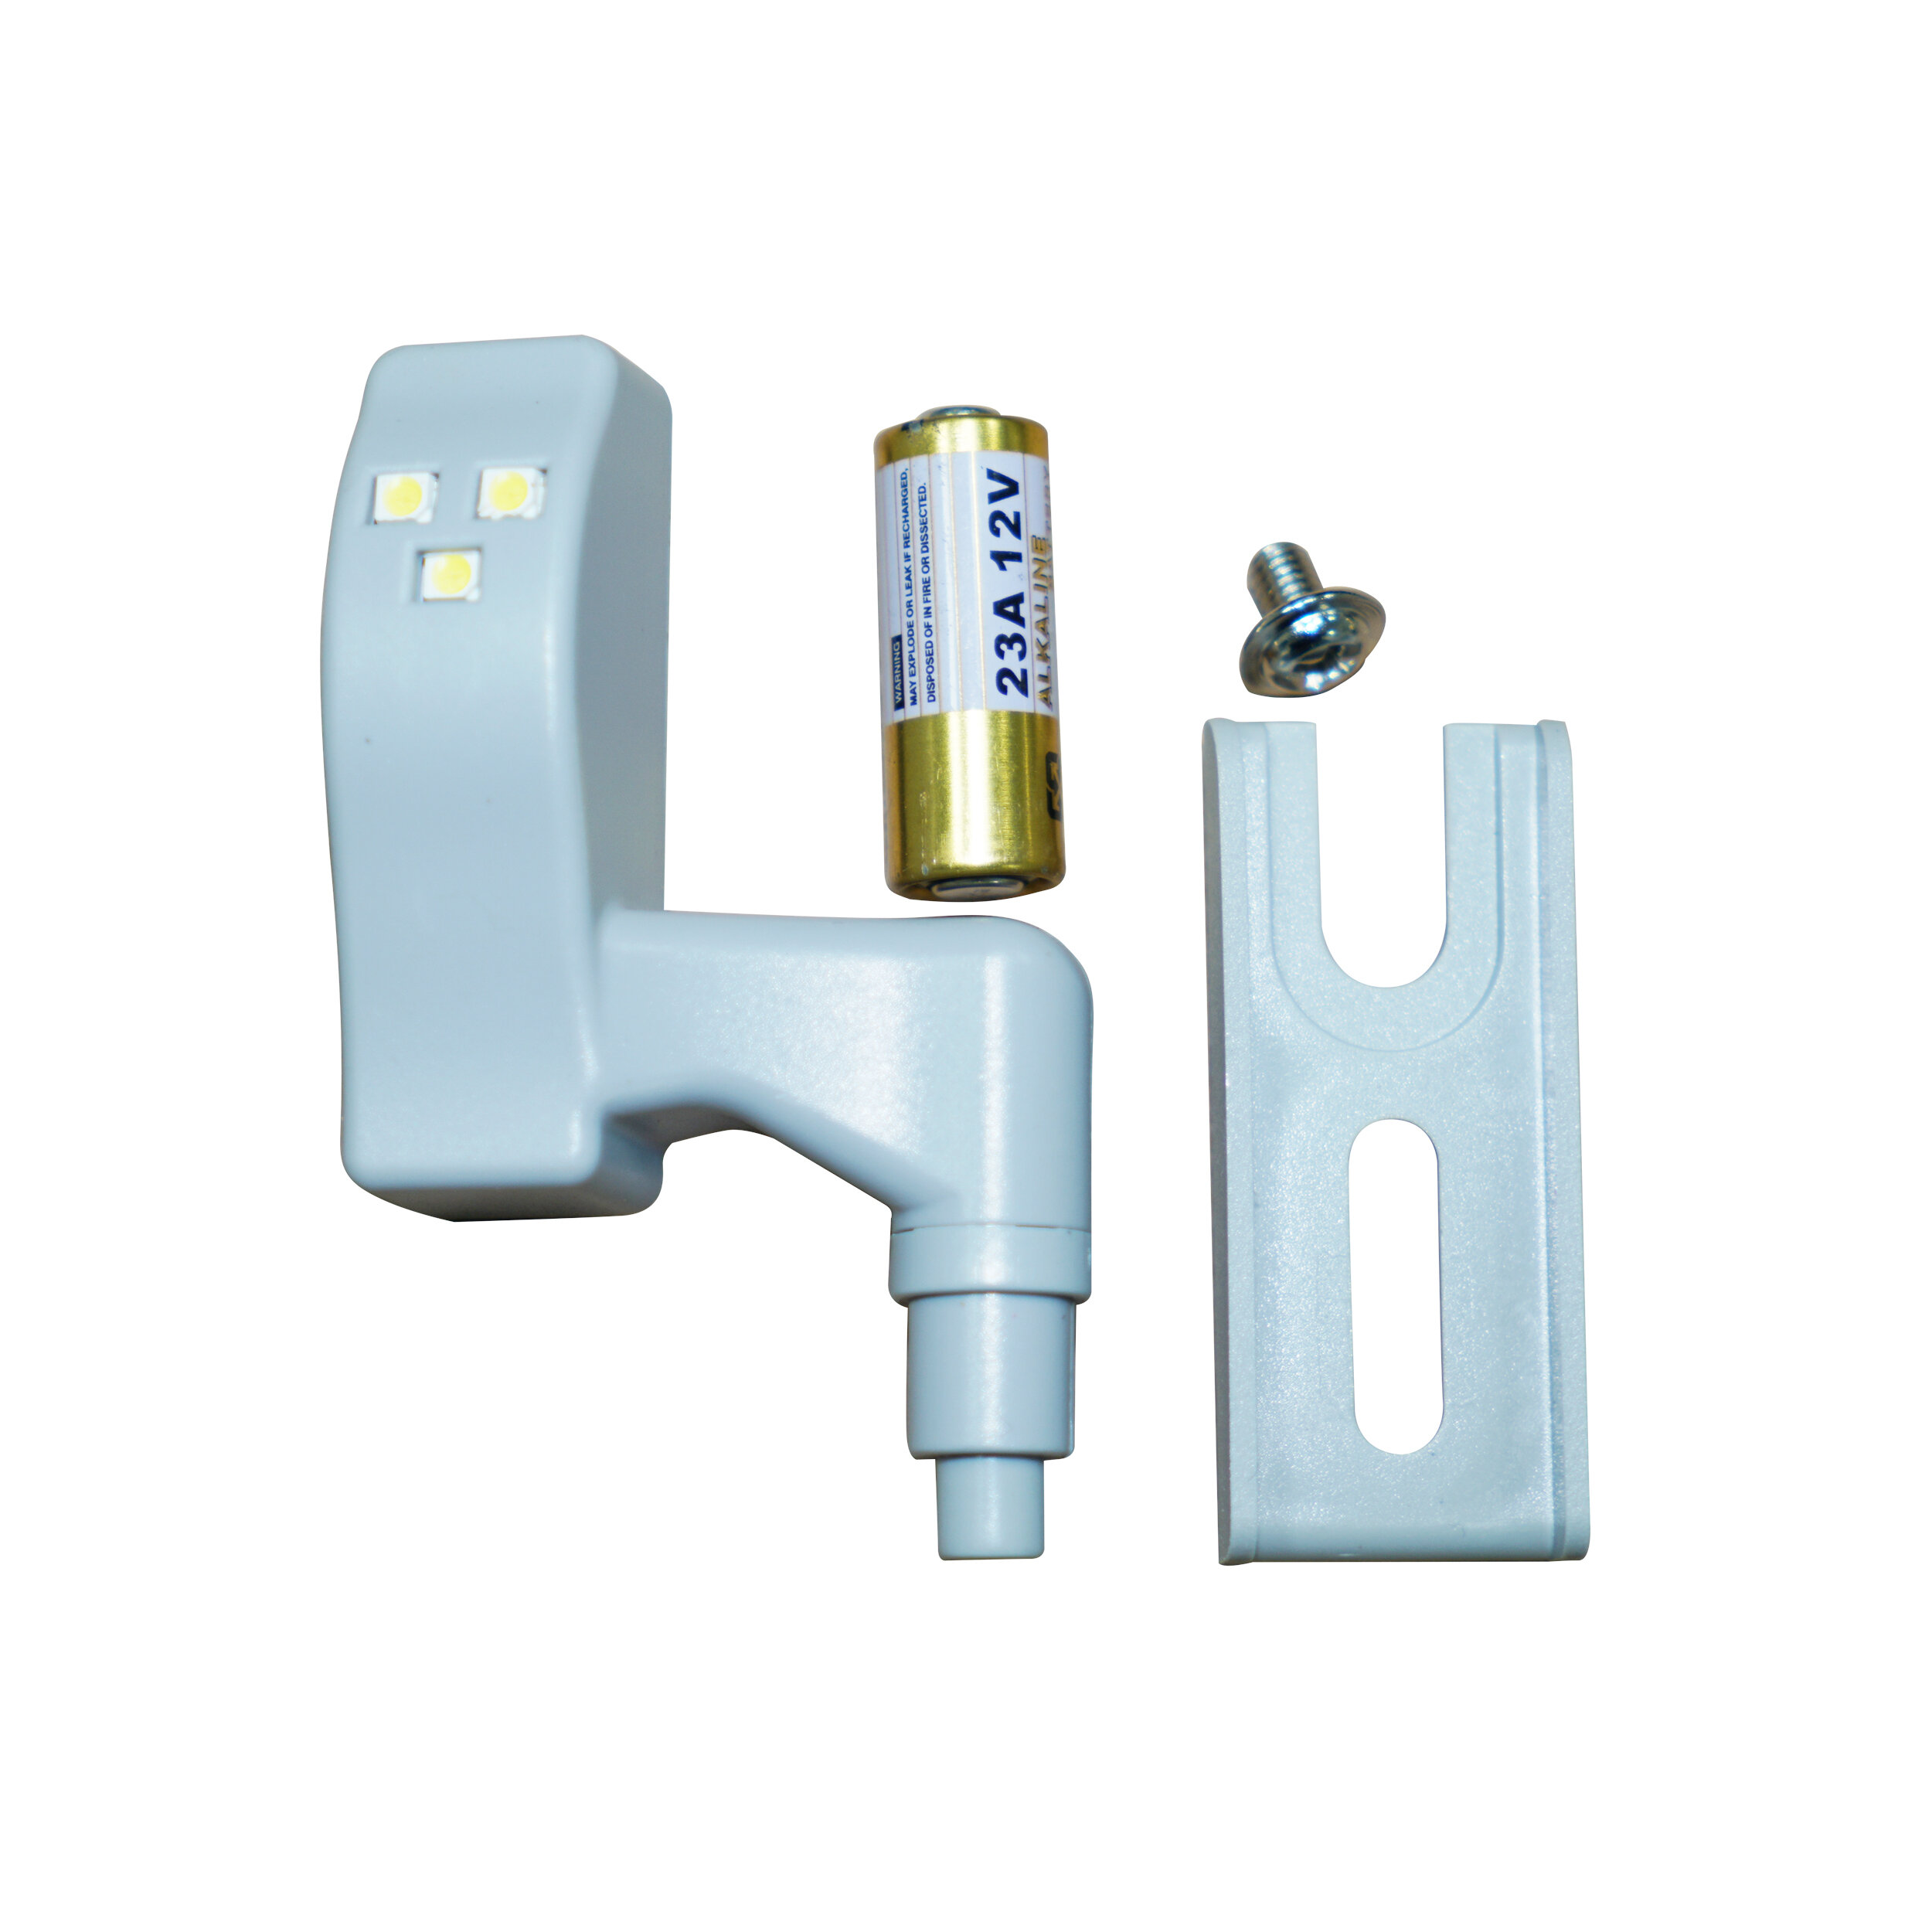 LuxorWare Automatic Hinge-Mounted LED Under Cabinet Bar Light | Wayfair